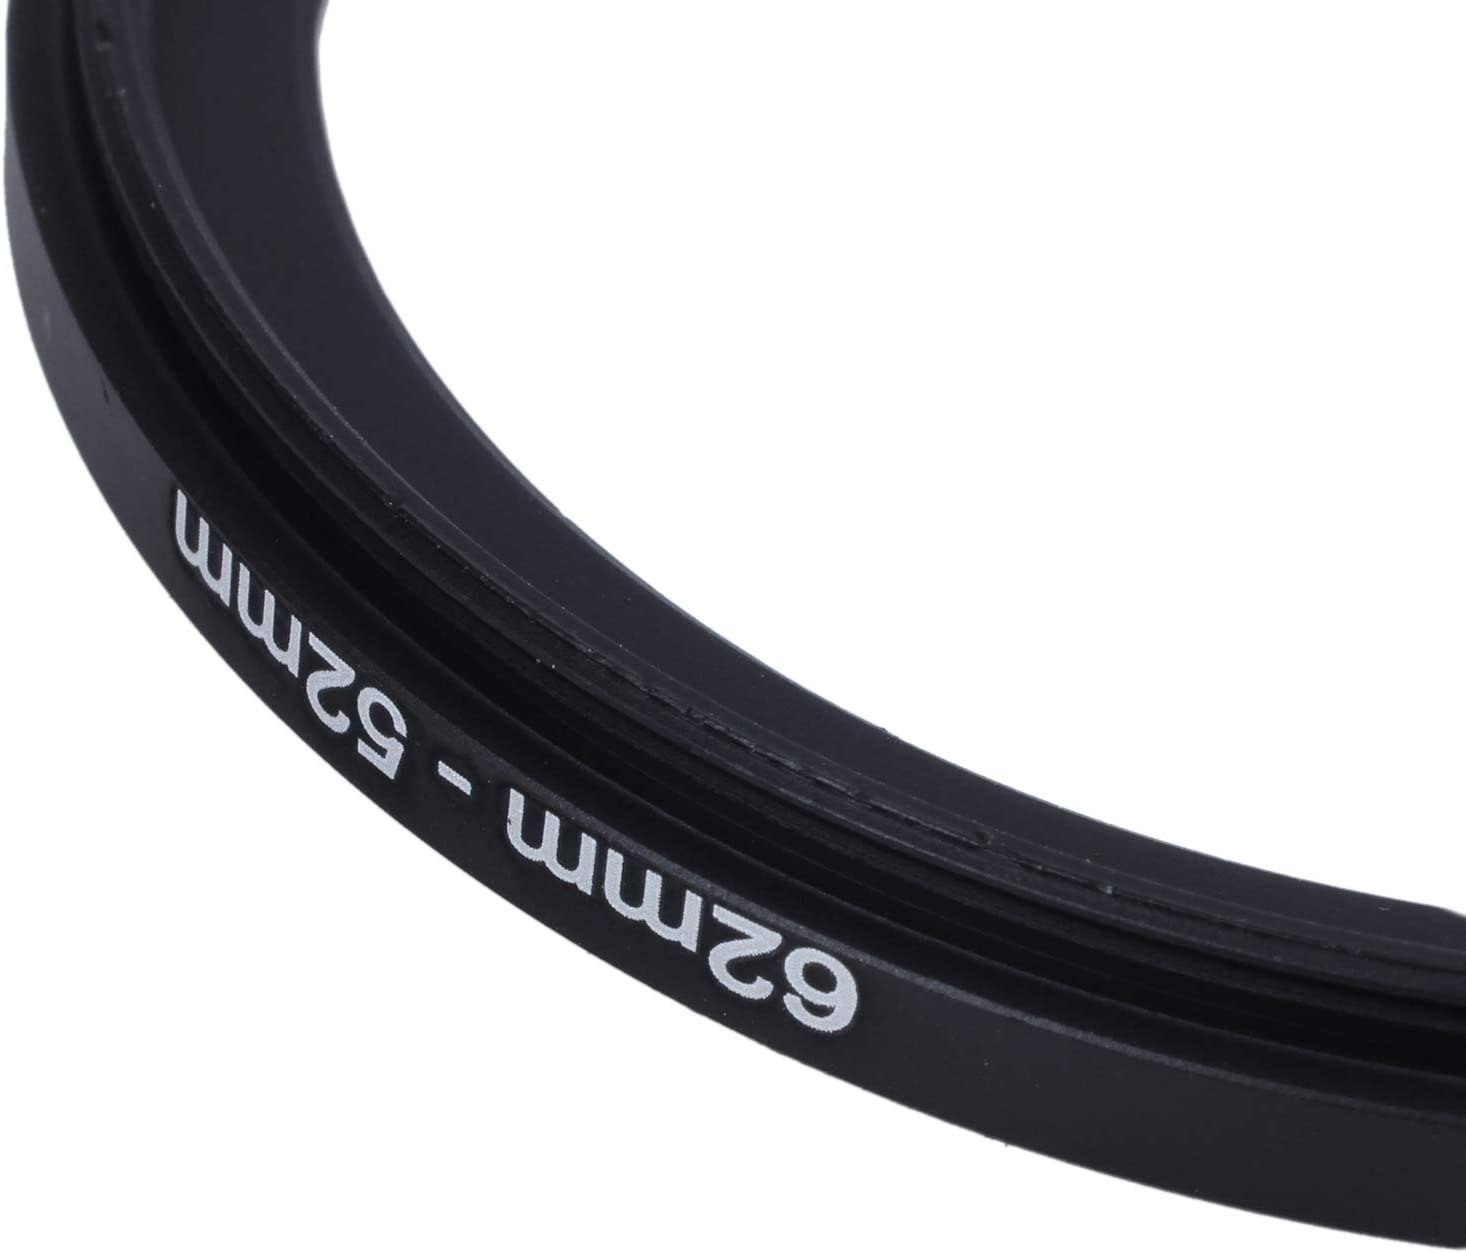 Iycorish 62mm-52mm 62mm to 52mm Black Step Down Ring for Camera